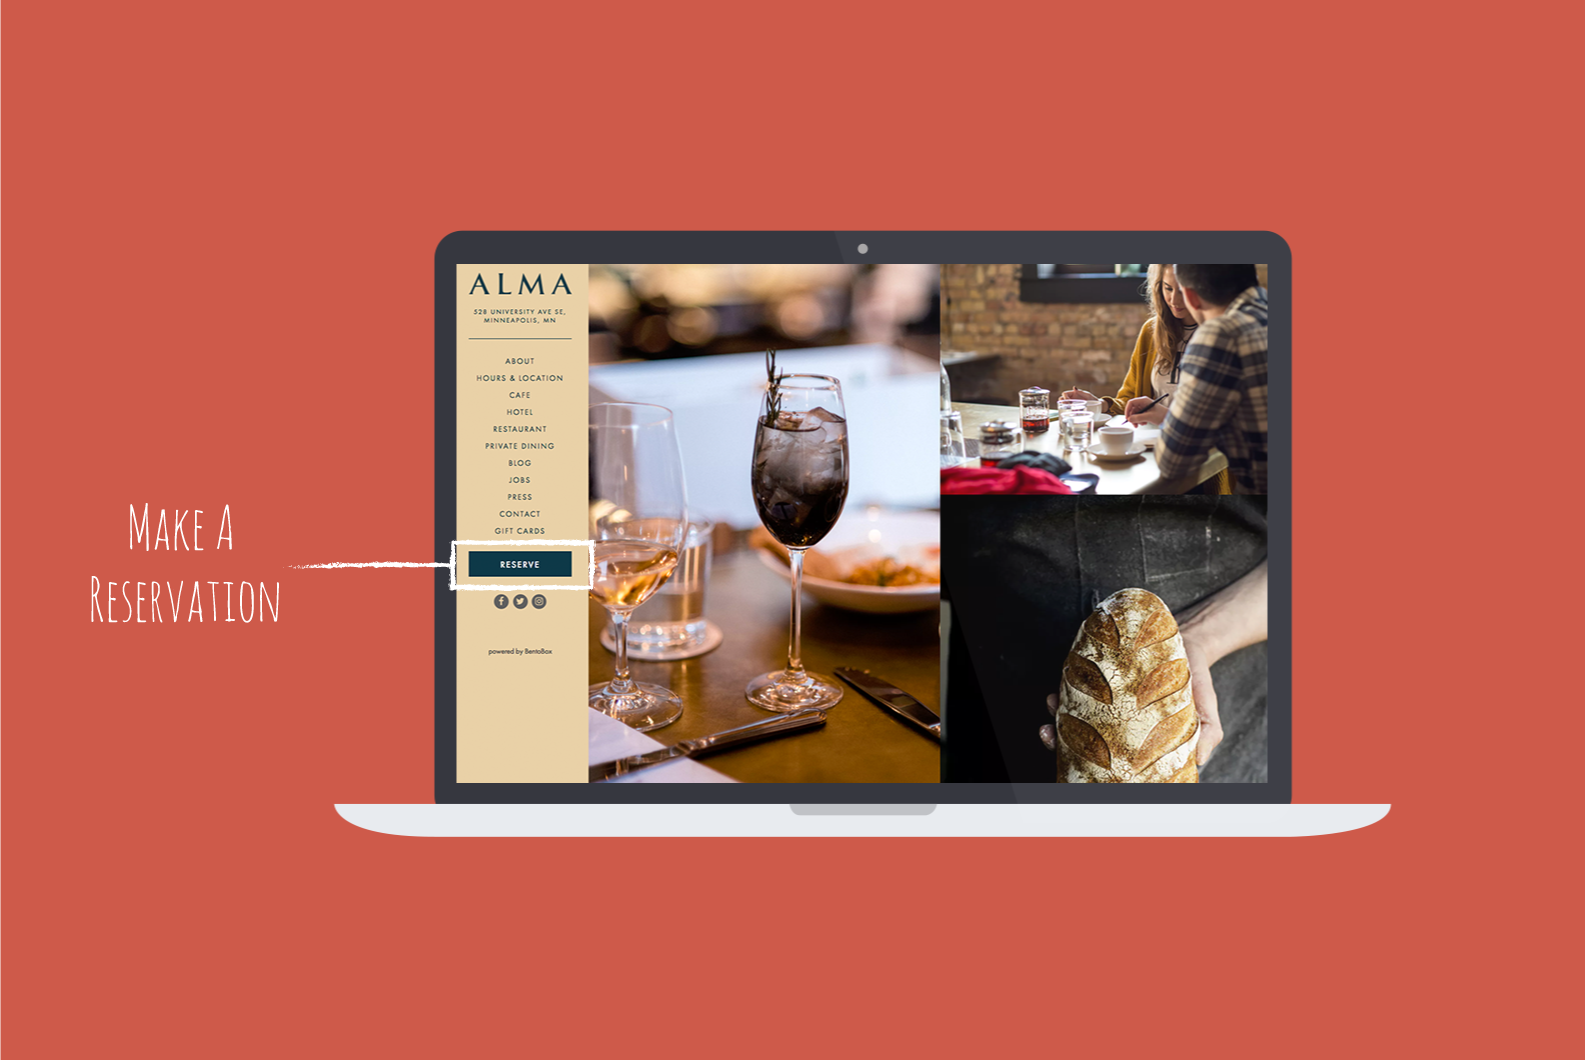 alma restaurant navigation with clear cta